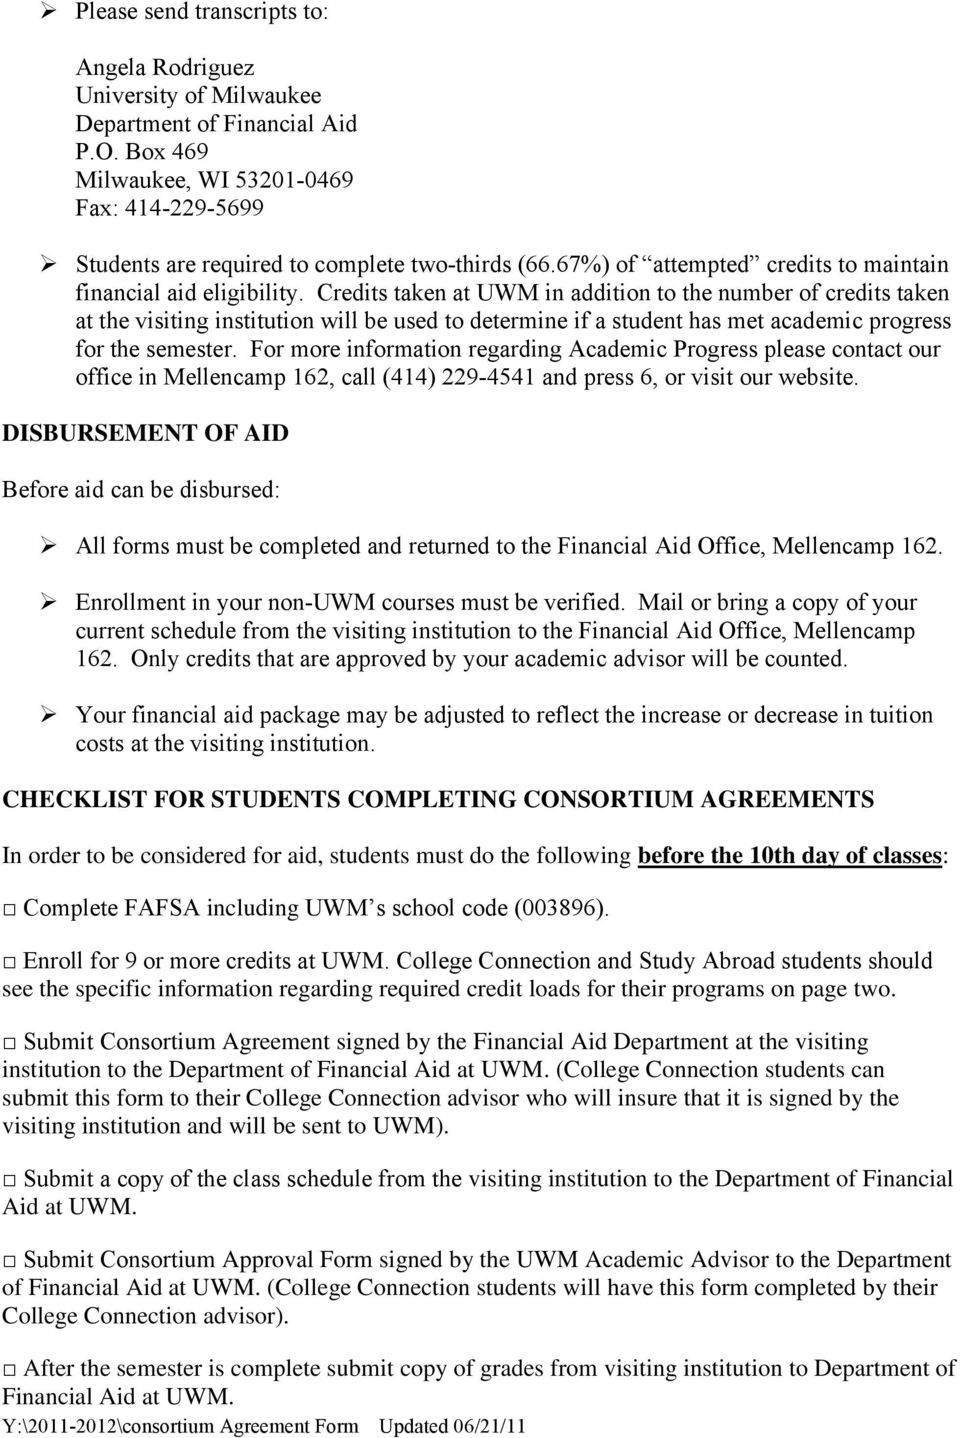 Instruction For Consortium Agreements Pdf